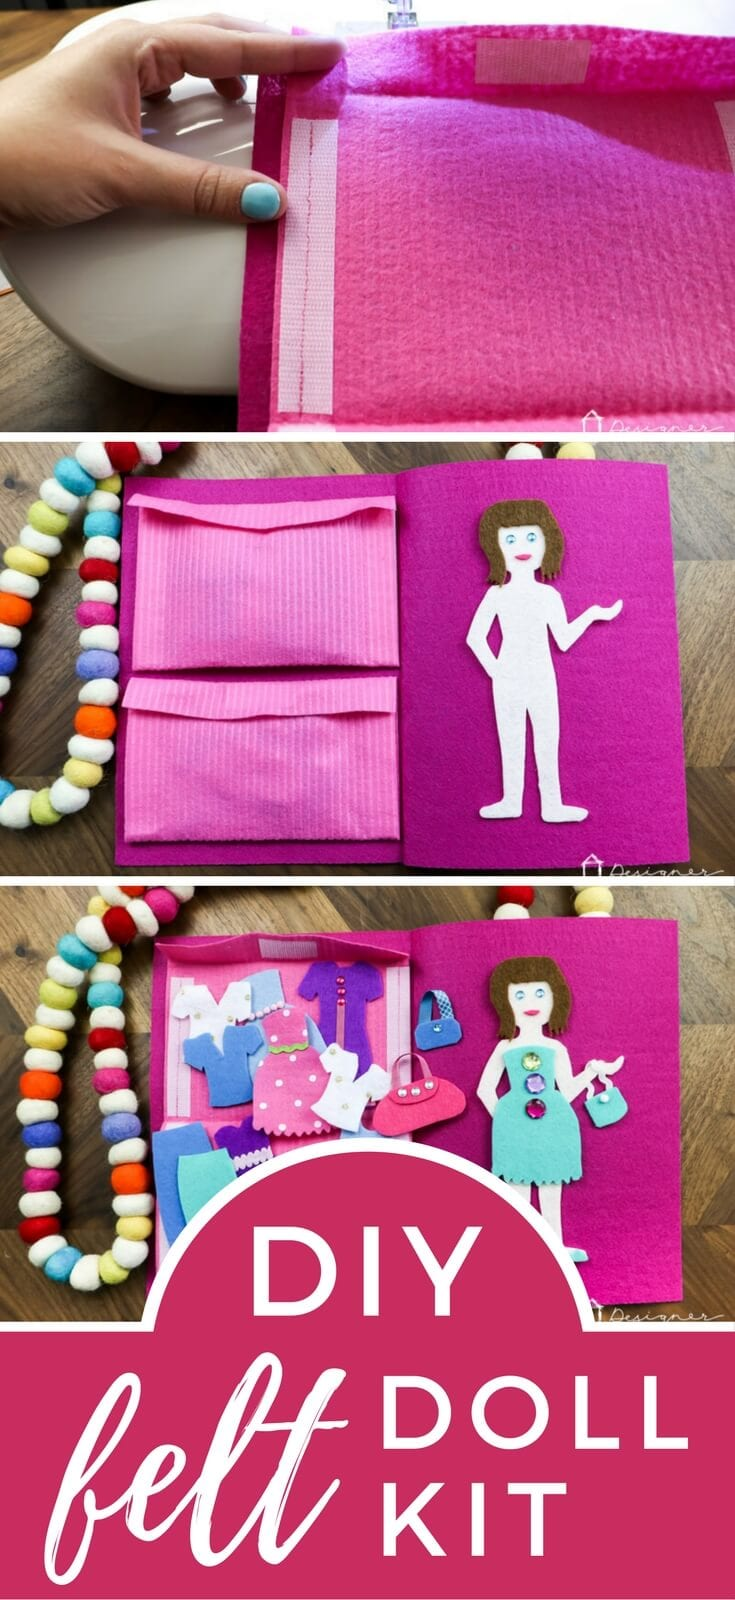 This DIY felt doll kit is fun to make and is a perfect quiet activity for any little girls in your life! Learn how to make your own DIY felt doll kit with this detailed tutorial.